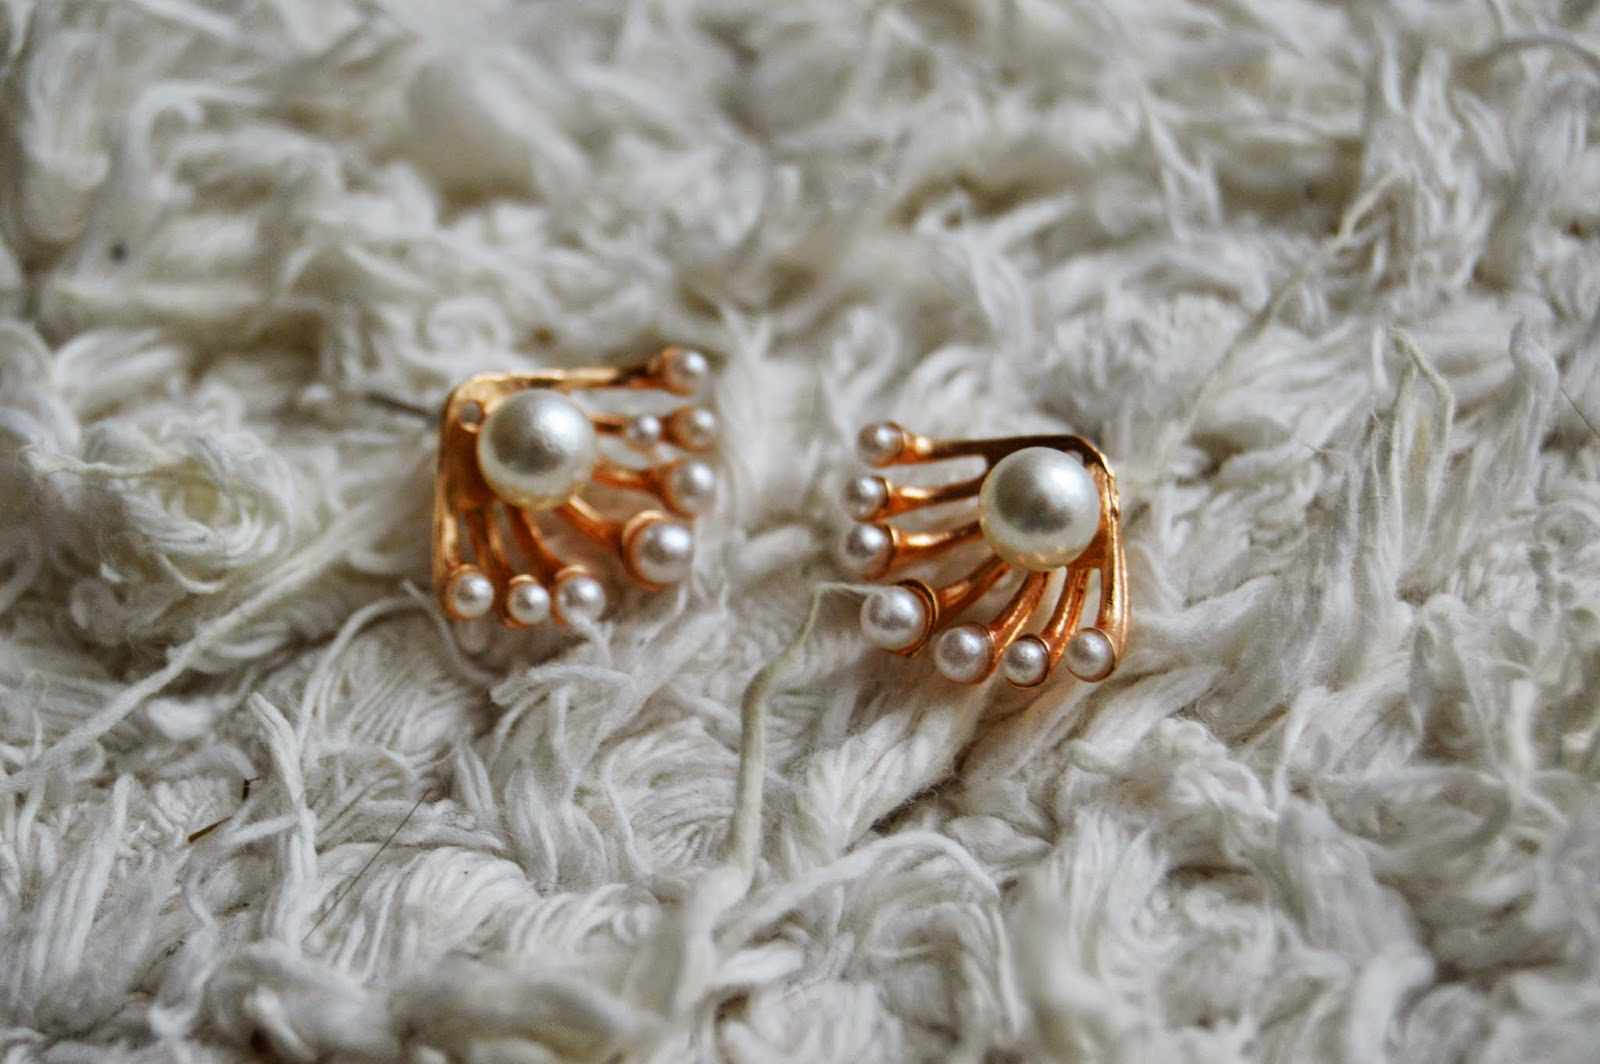 http://www.bornprettystore.com/palm-shaped-studs-gorgeous-pearl-earrings-p-15982.html